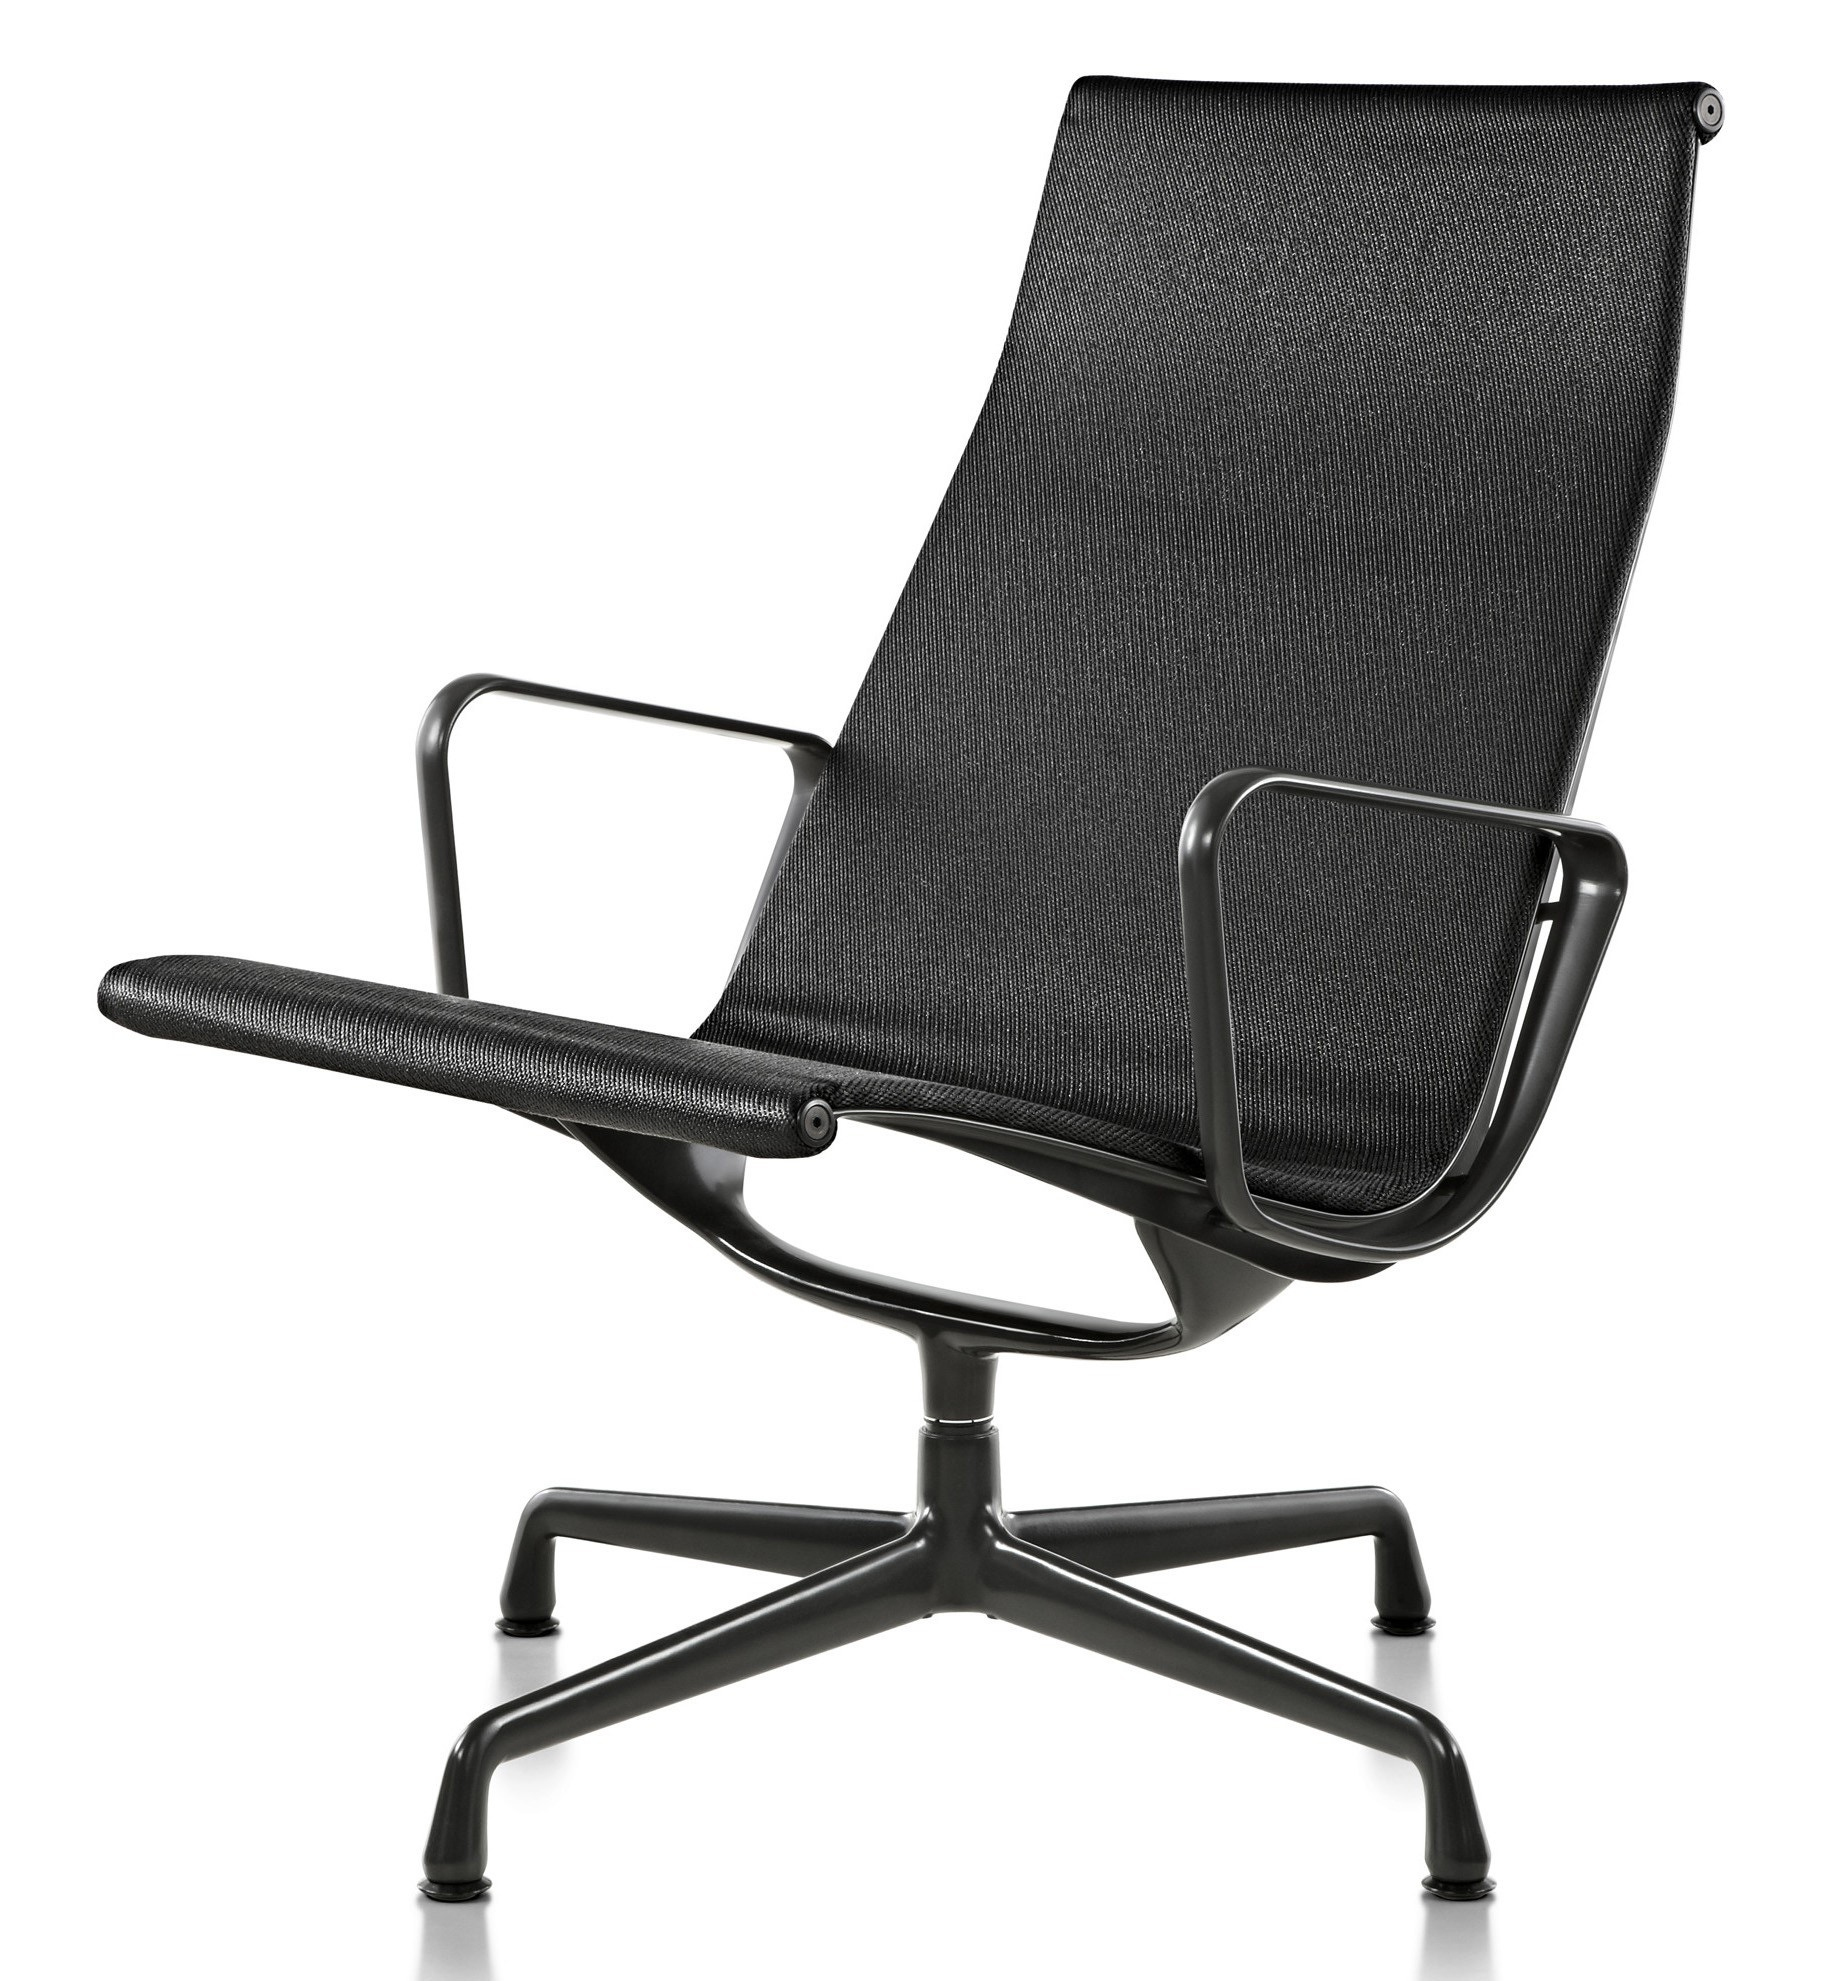 Aeron Aluminum Chairs - eames-alum-lounge-chair-outdoor-2_Fantastic Aeron Aluminum Chairs - eames-alum-lounge-chair-outdoor-2  Pic_275279.jpg